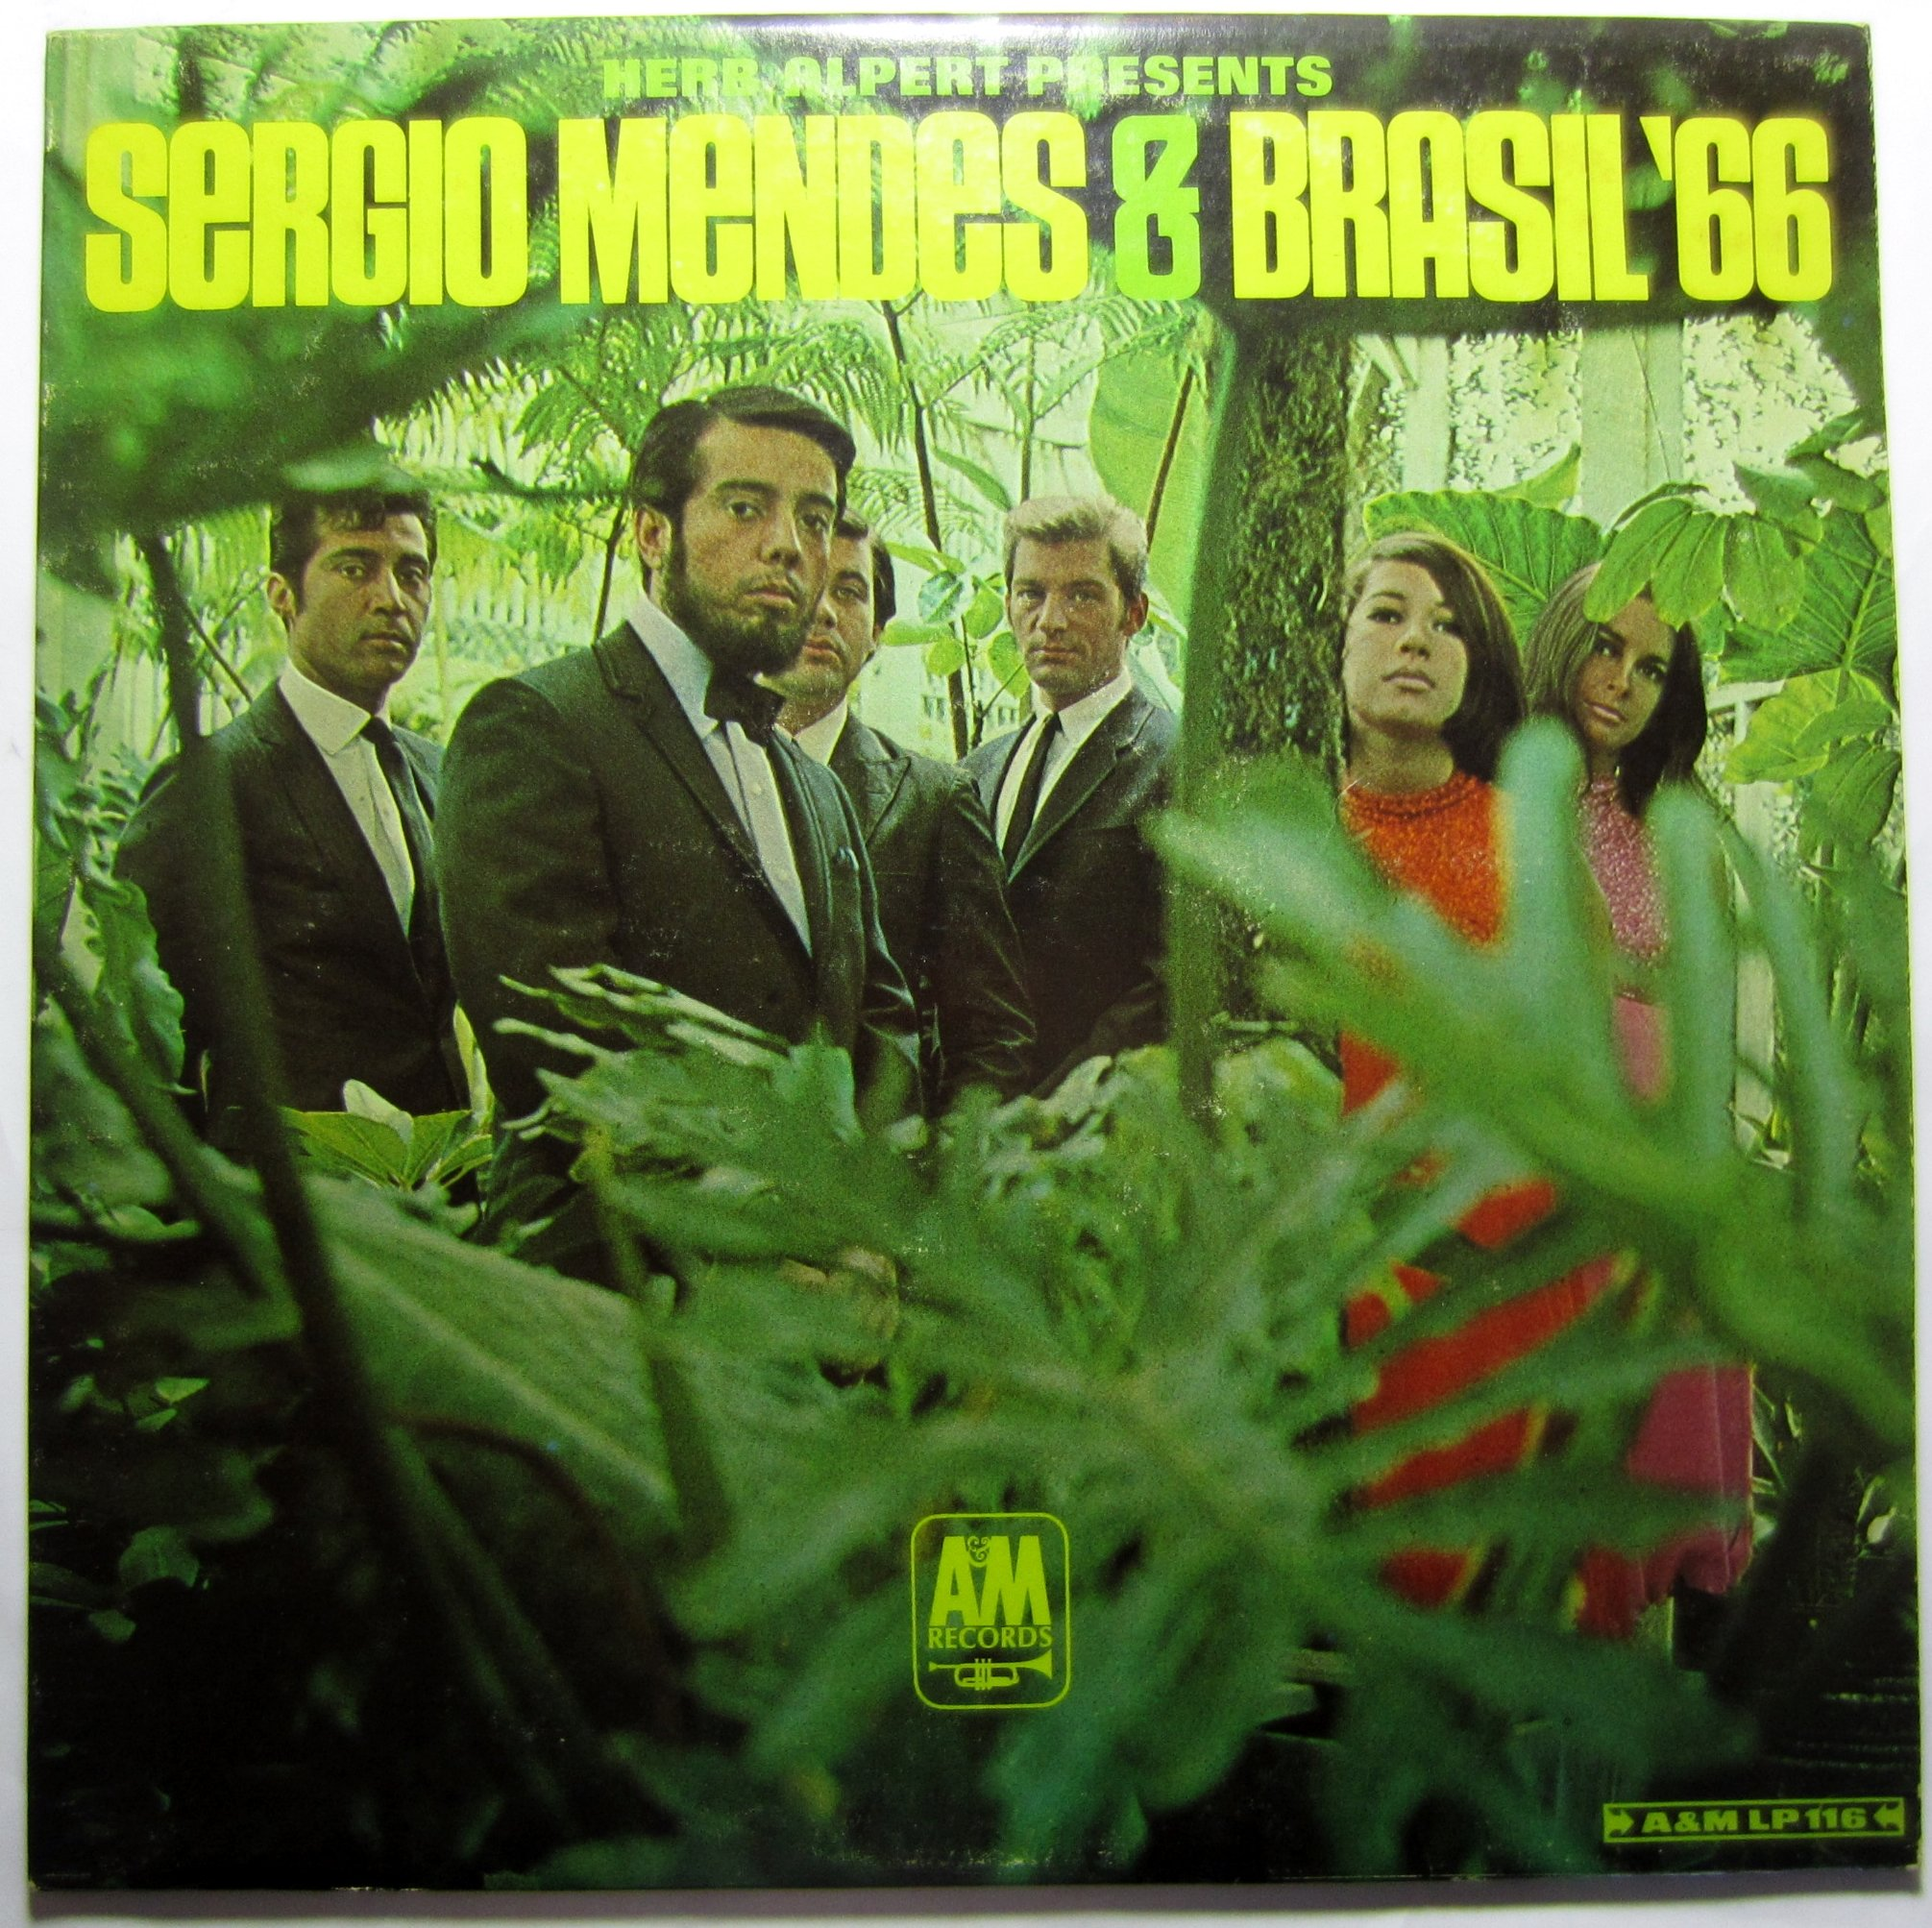 Herb Alpert Presents Sergio Mendes & Brasil '66 by A&M